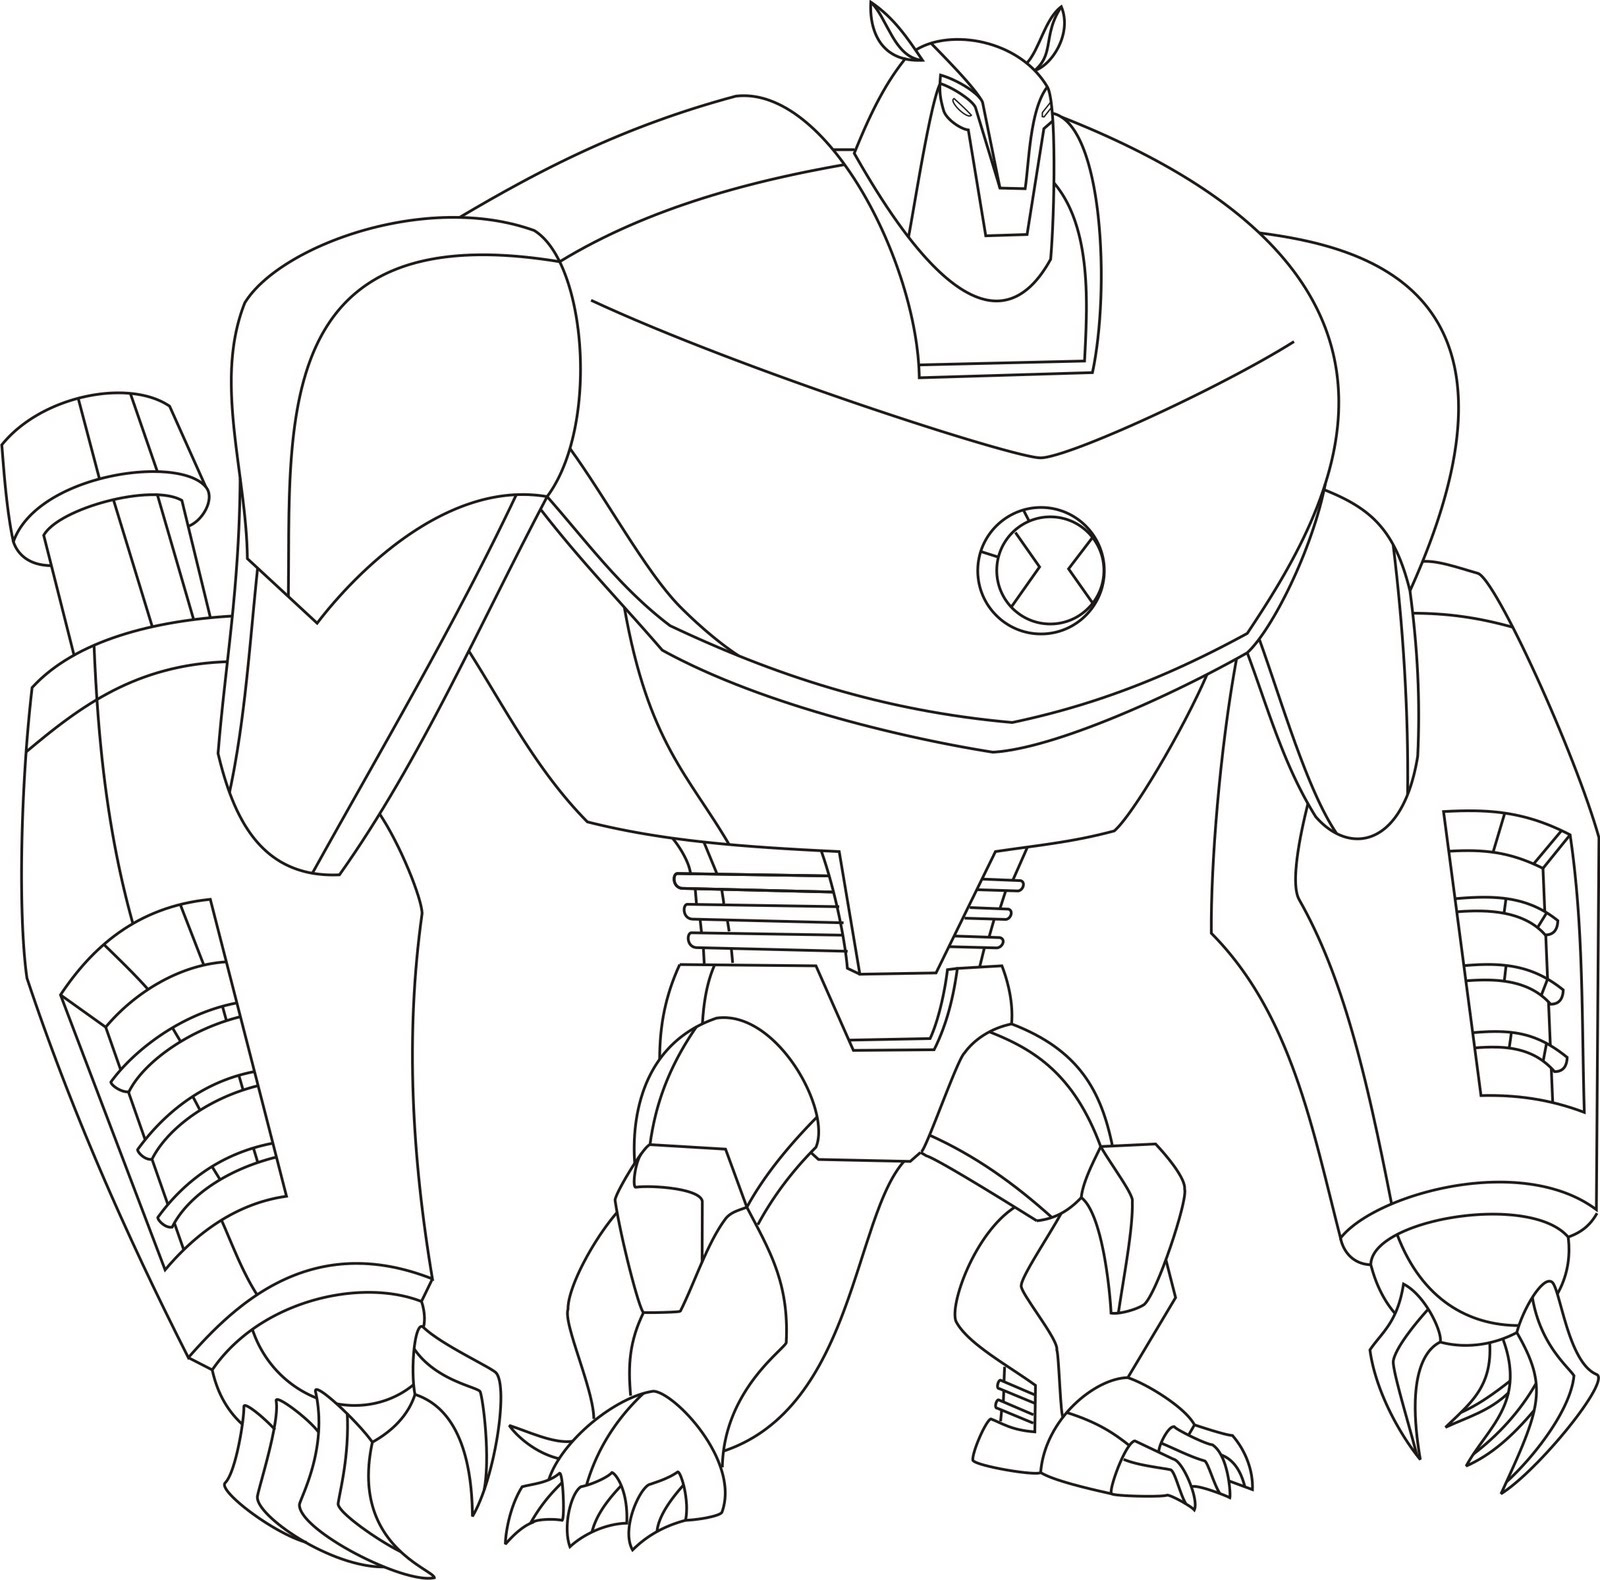 Ben 10 Alien Force Swampfire coloring page | Free Printable ... | 1580x1600